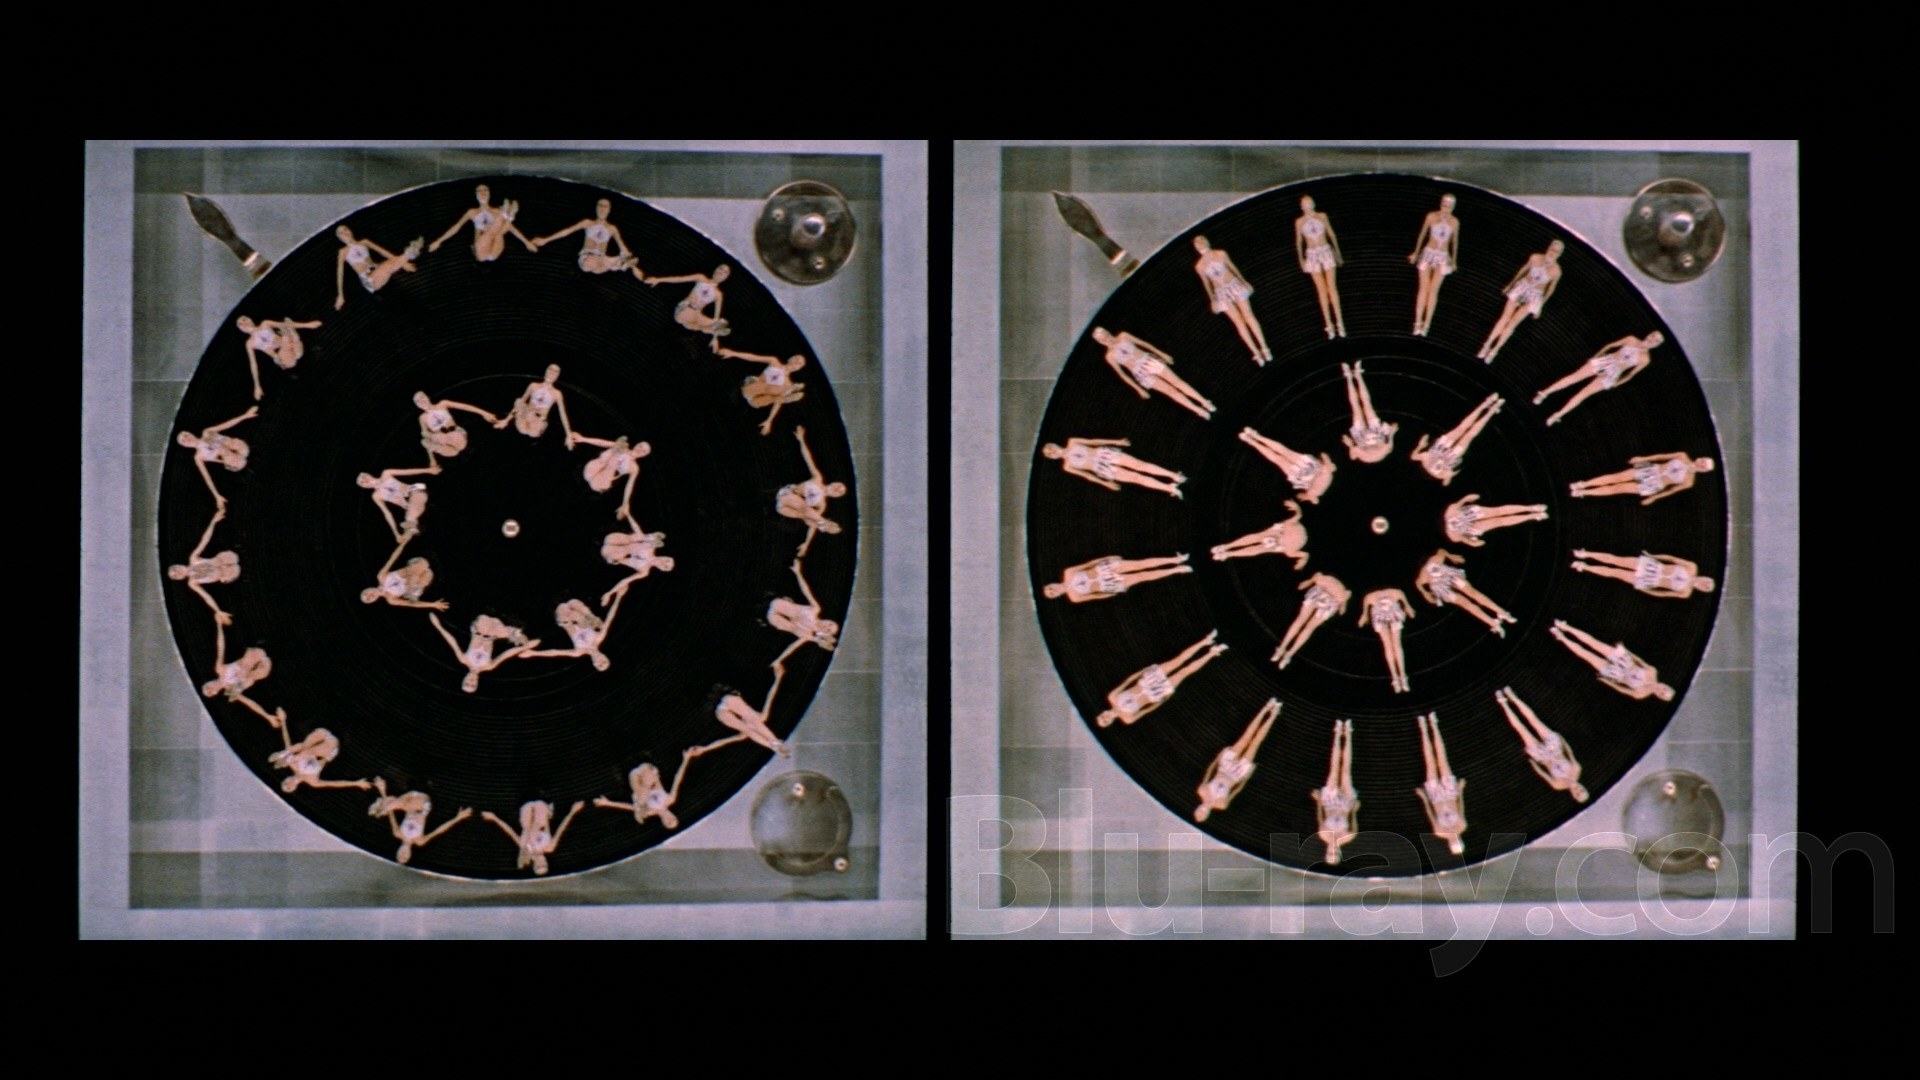 Fractal arrangement of synchronized dancers as seen from an overhead shot in the film The Boyfriend.